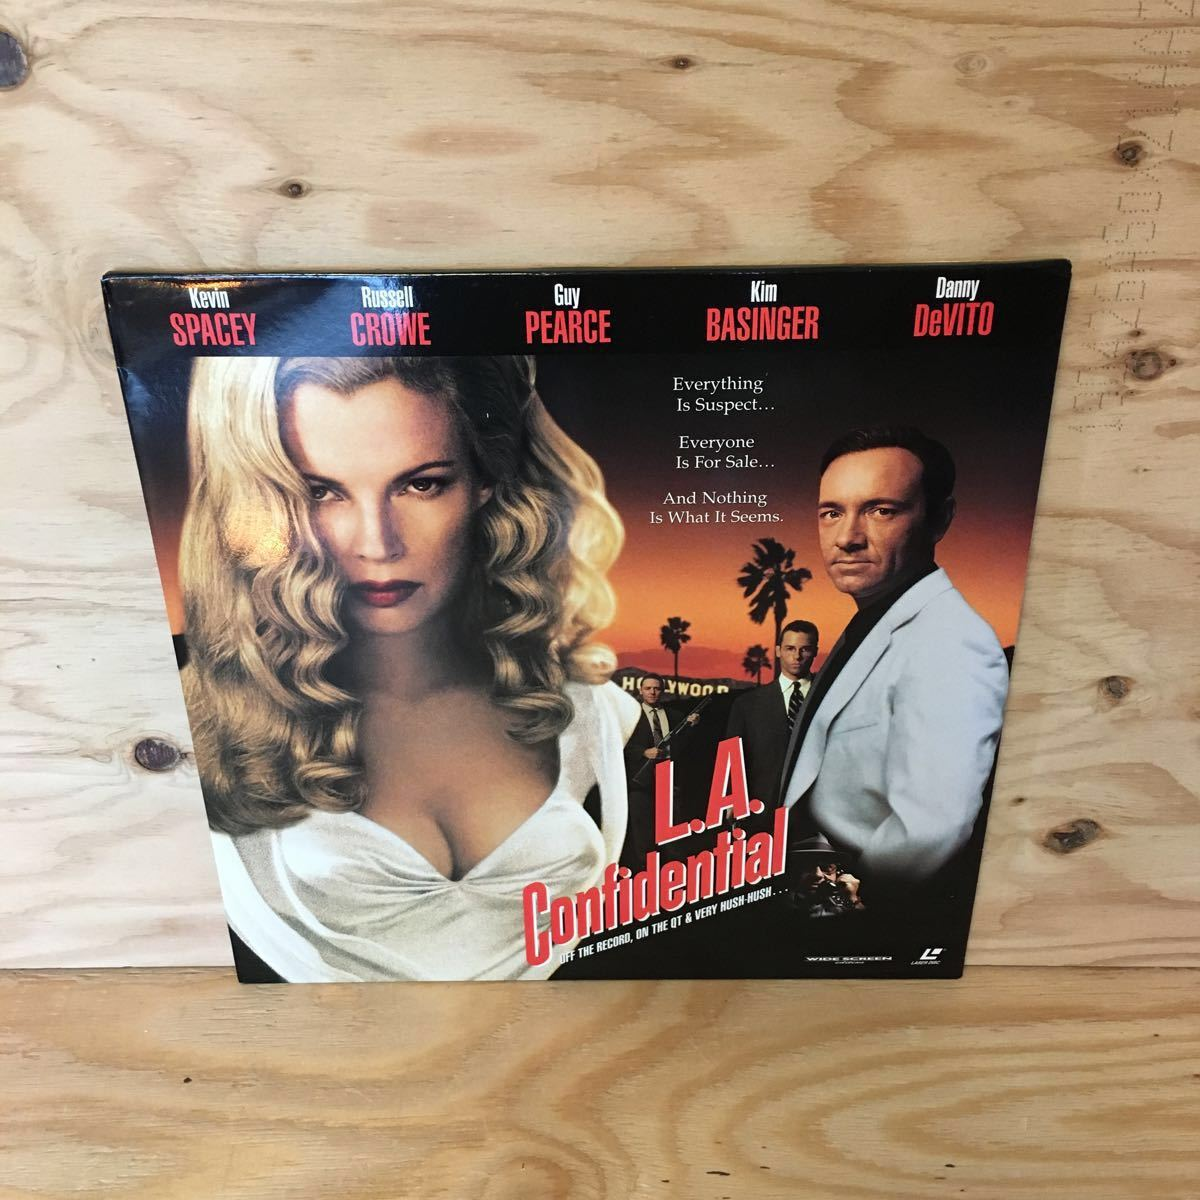 ◎3FJJB-200212 レア[L.A. Confidential 輸入盤]LD レーザーディスク KEVIN SPACEY CURTIS HANSON_画像1